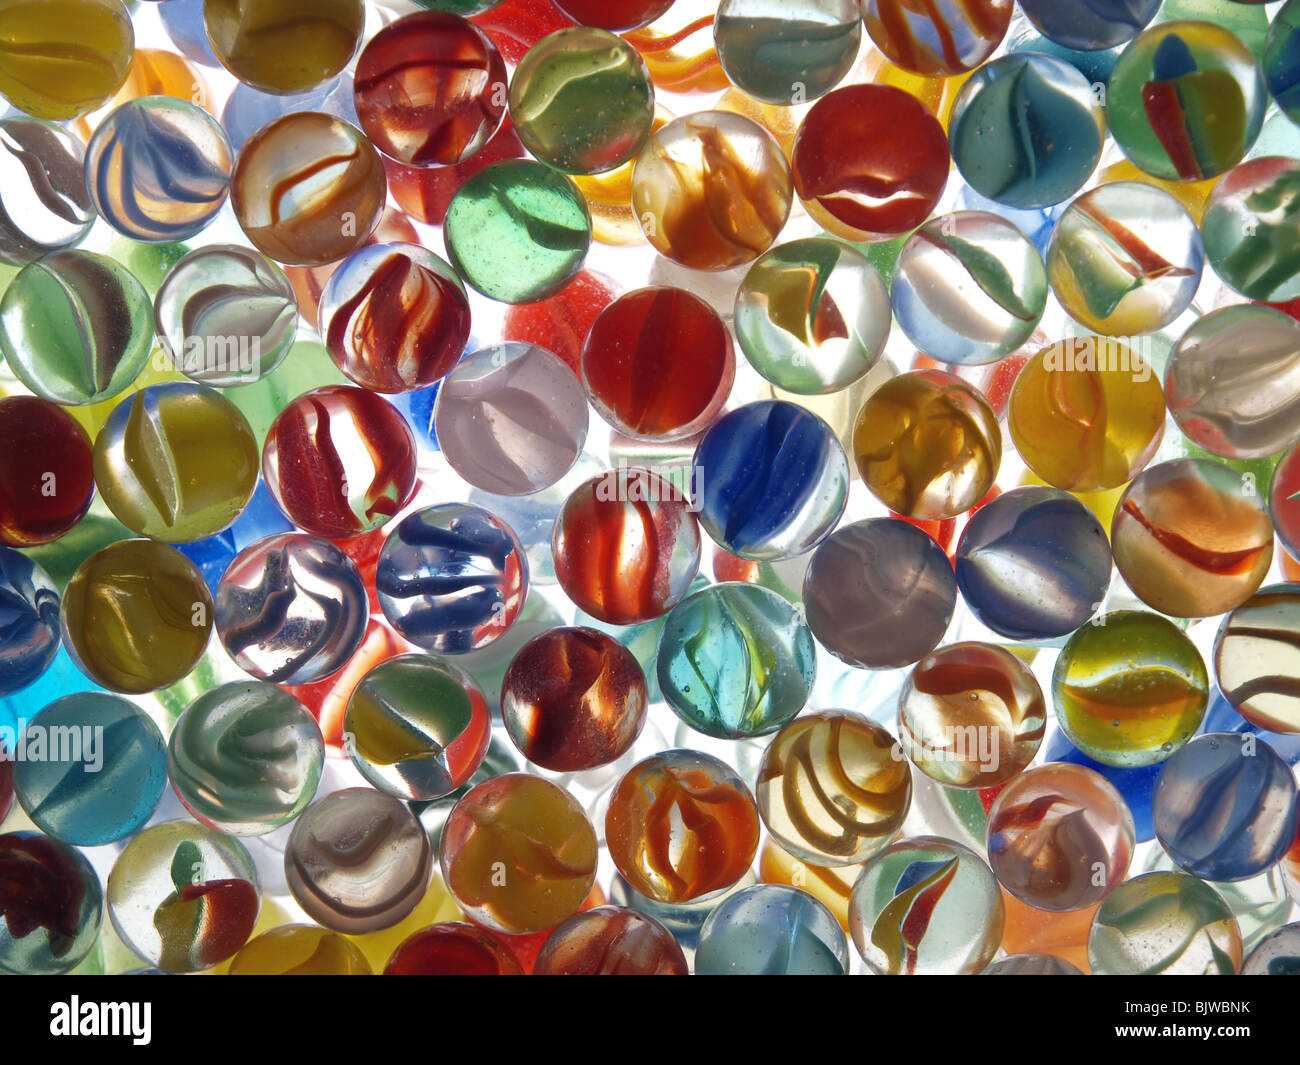 Colorful marbles in a glass bowl on top of a light table. - Stock Image